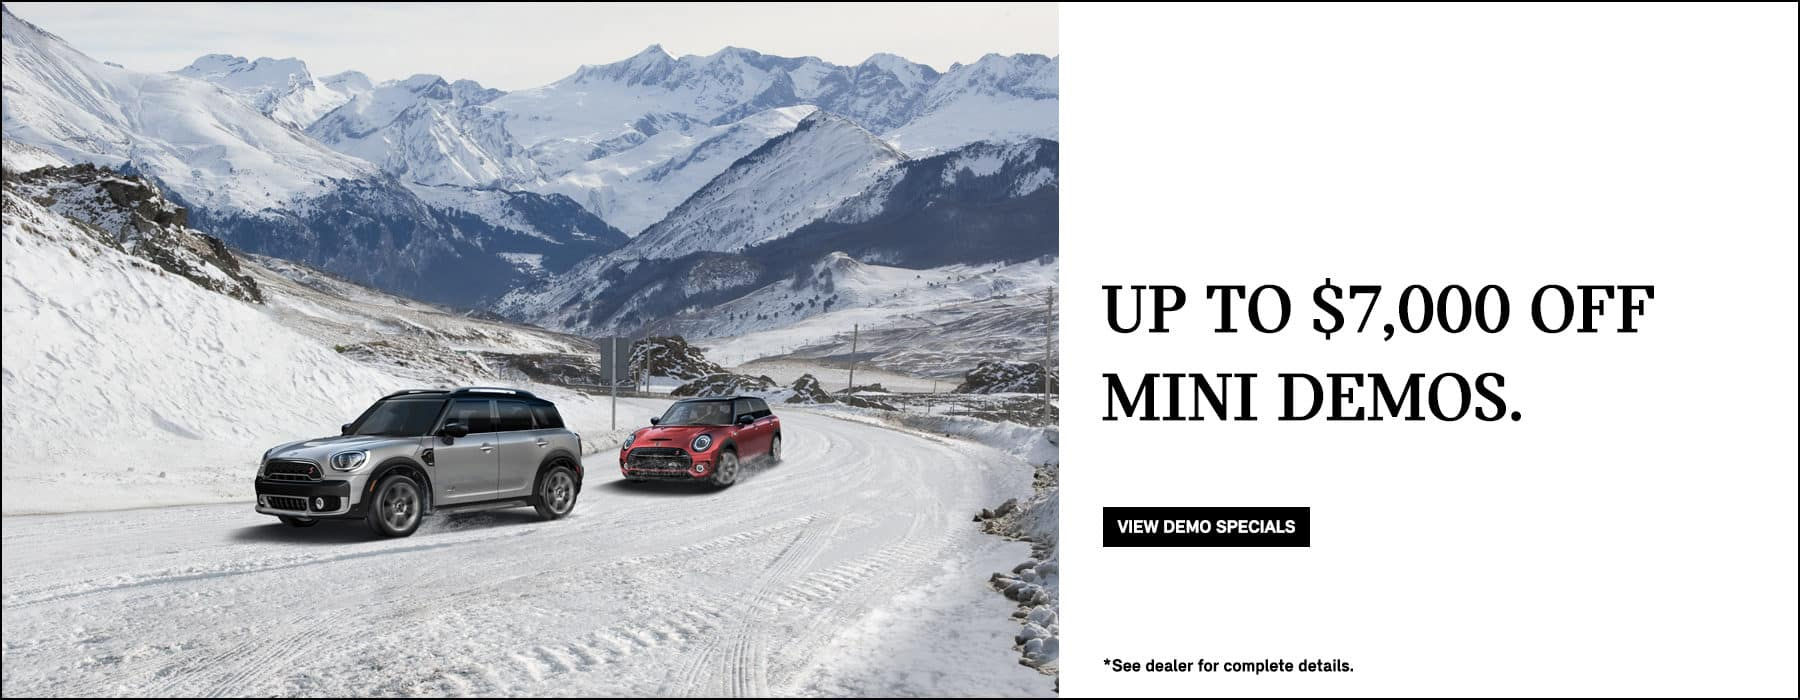 Up to $7,000 off MINI Demo models.